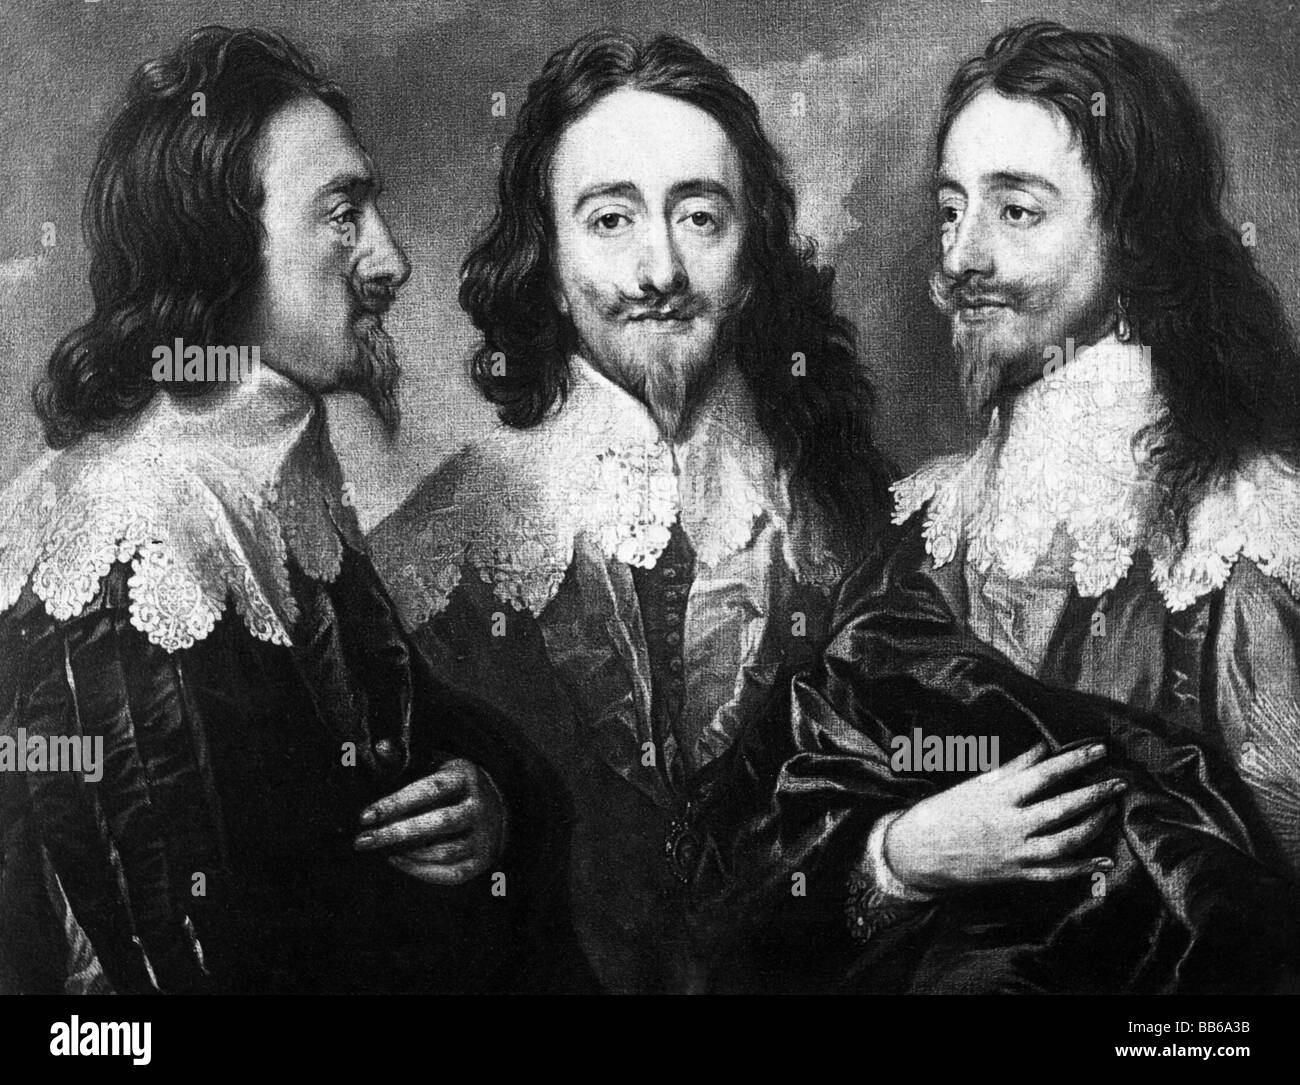 Charles I, 19.11.1600 - 30.1.1649, King of England 27.3..1625 - 30.1.1649, triple portrai, painting by Anthony van - Stock Image